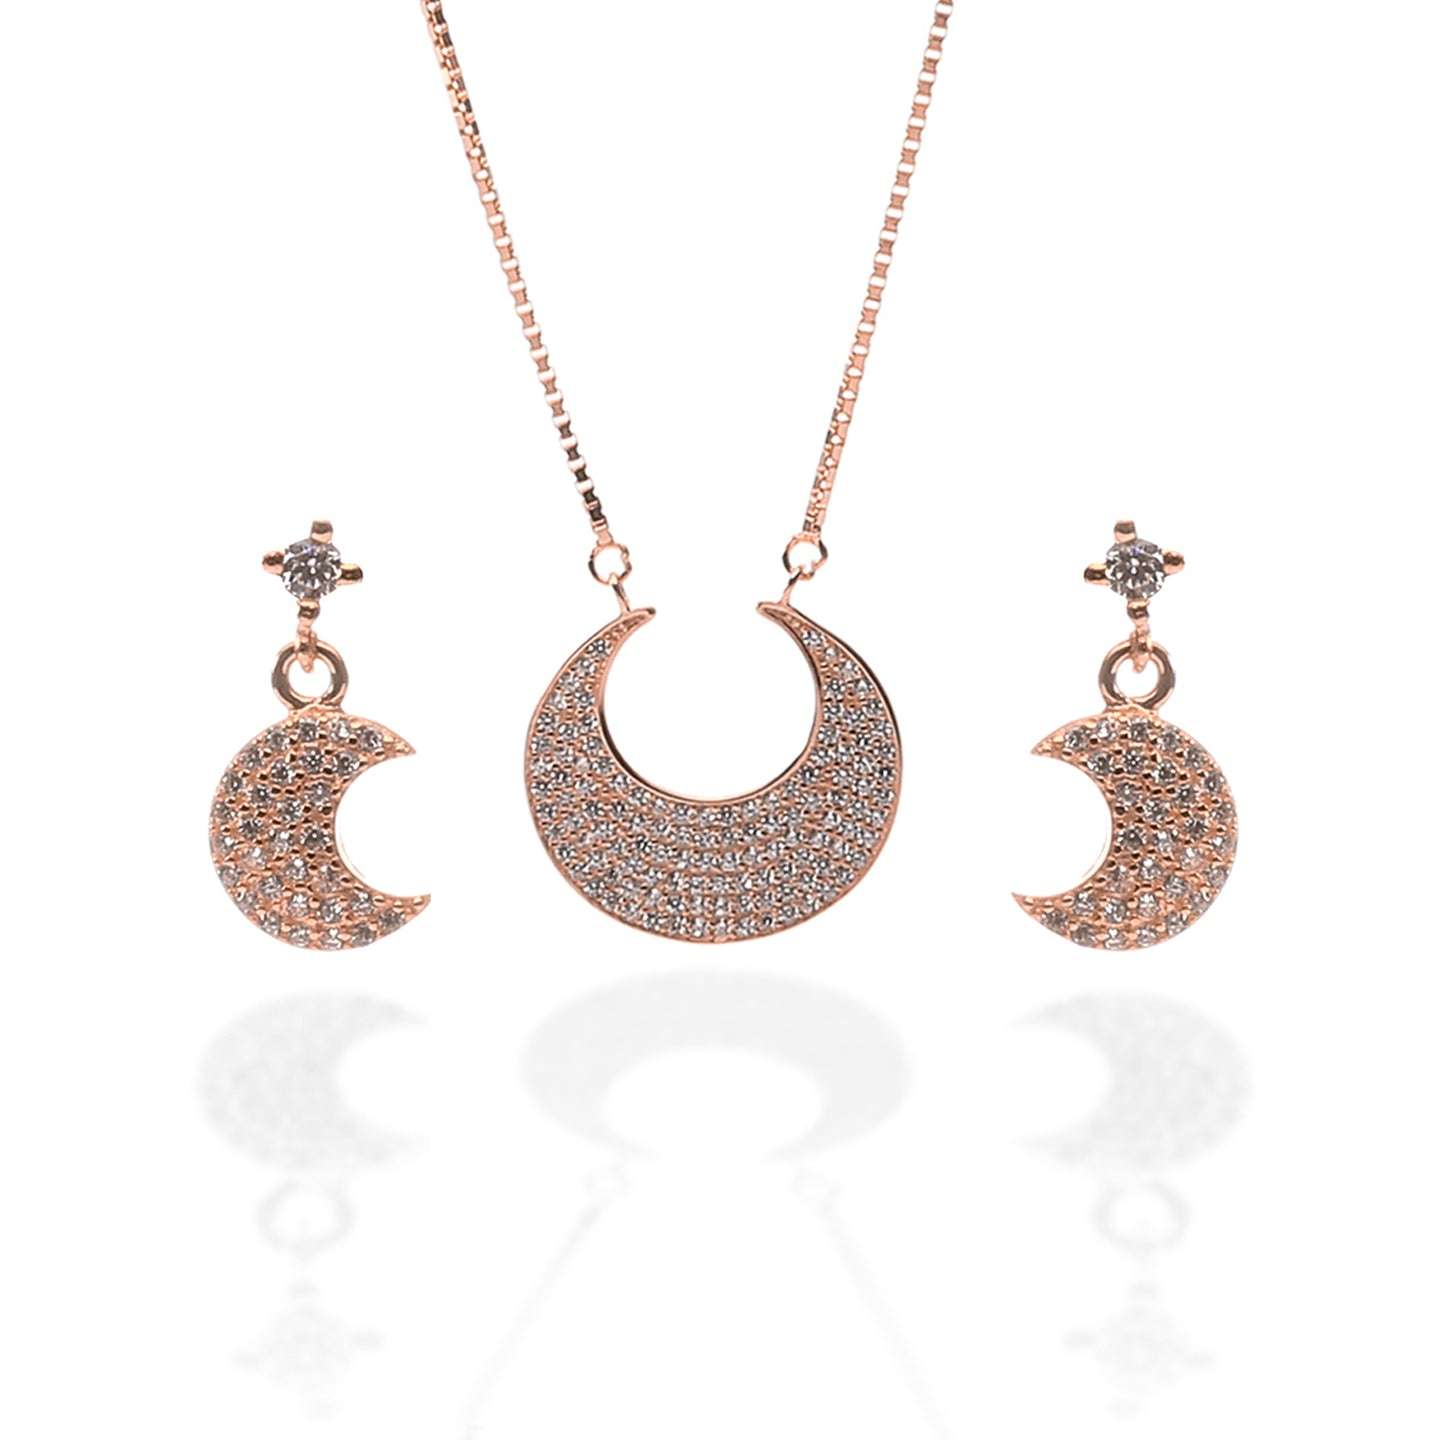 Crescent Moon Shaped Pendant Necklace and Earring Set - ARJW1001RG